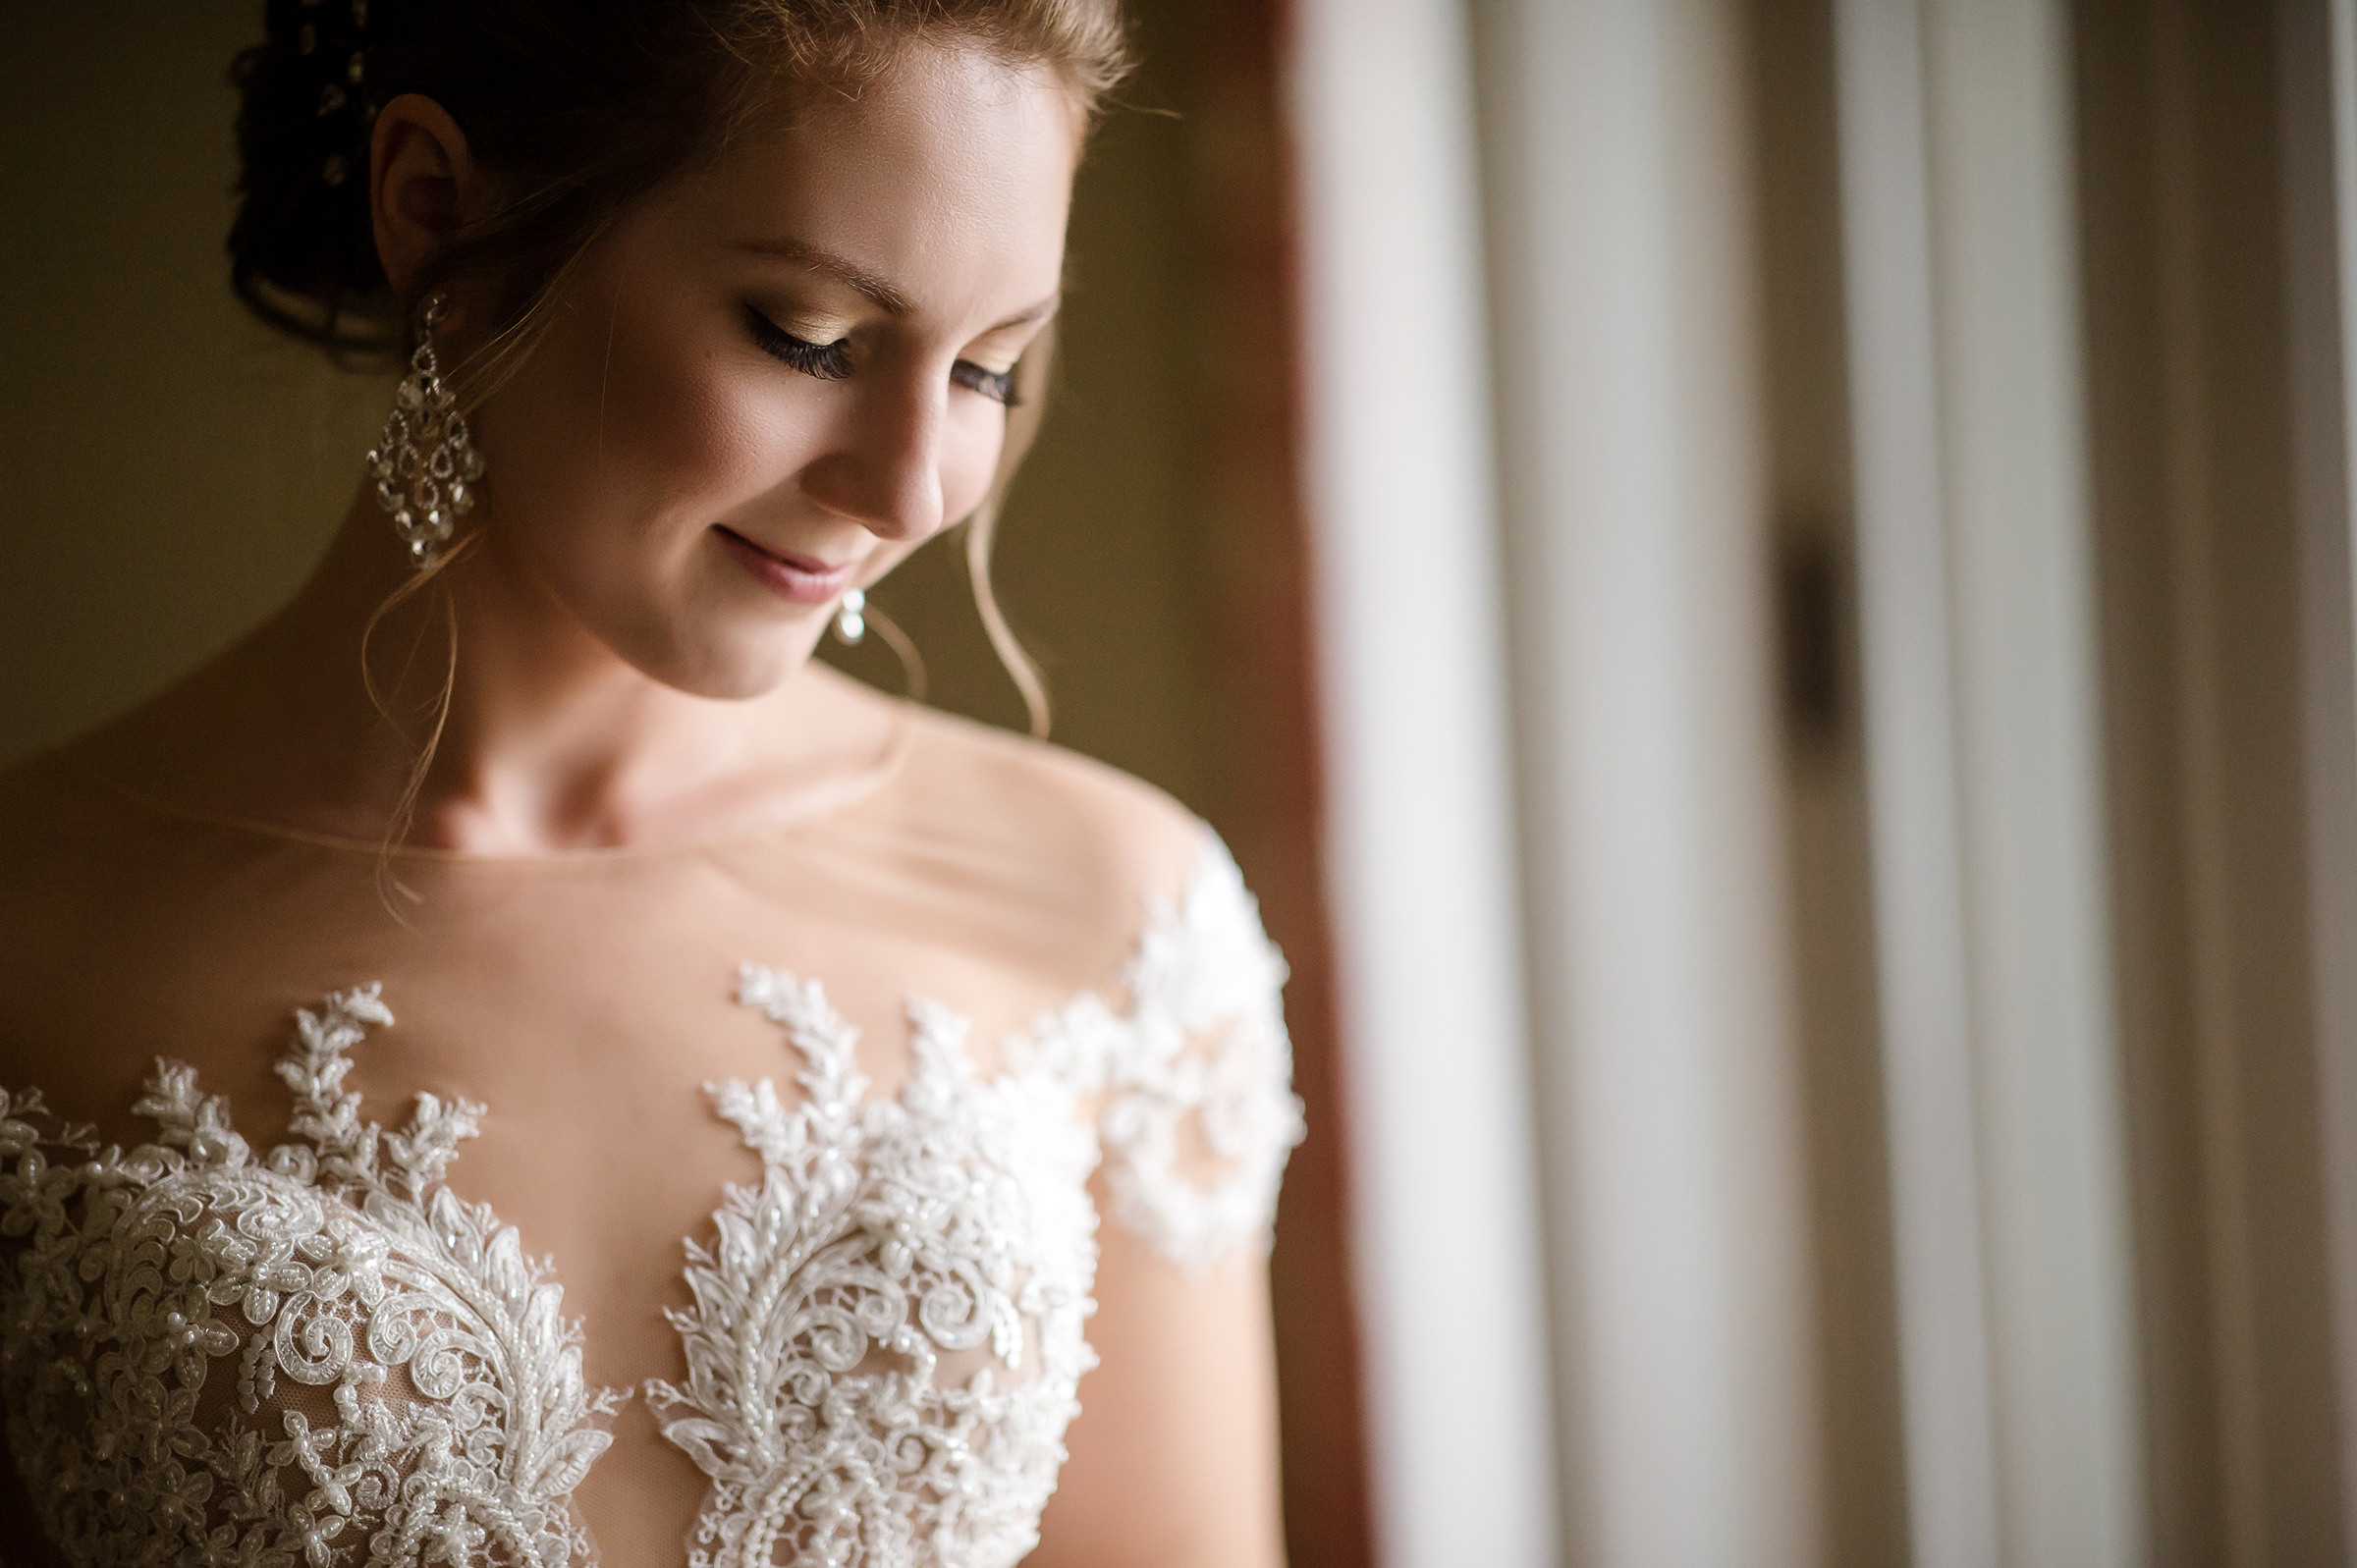 Bride wearing beaded applique bodice and chandelier earrings - photo by David & Sherry Photography